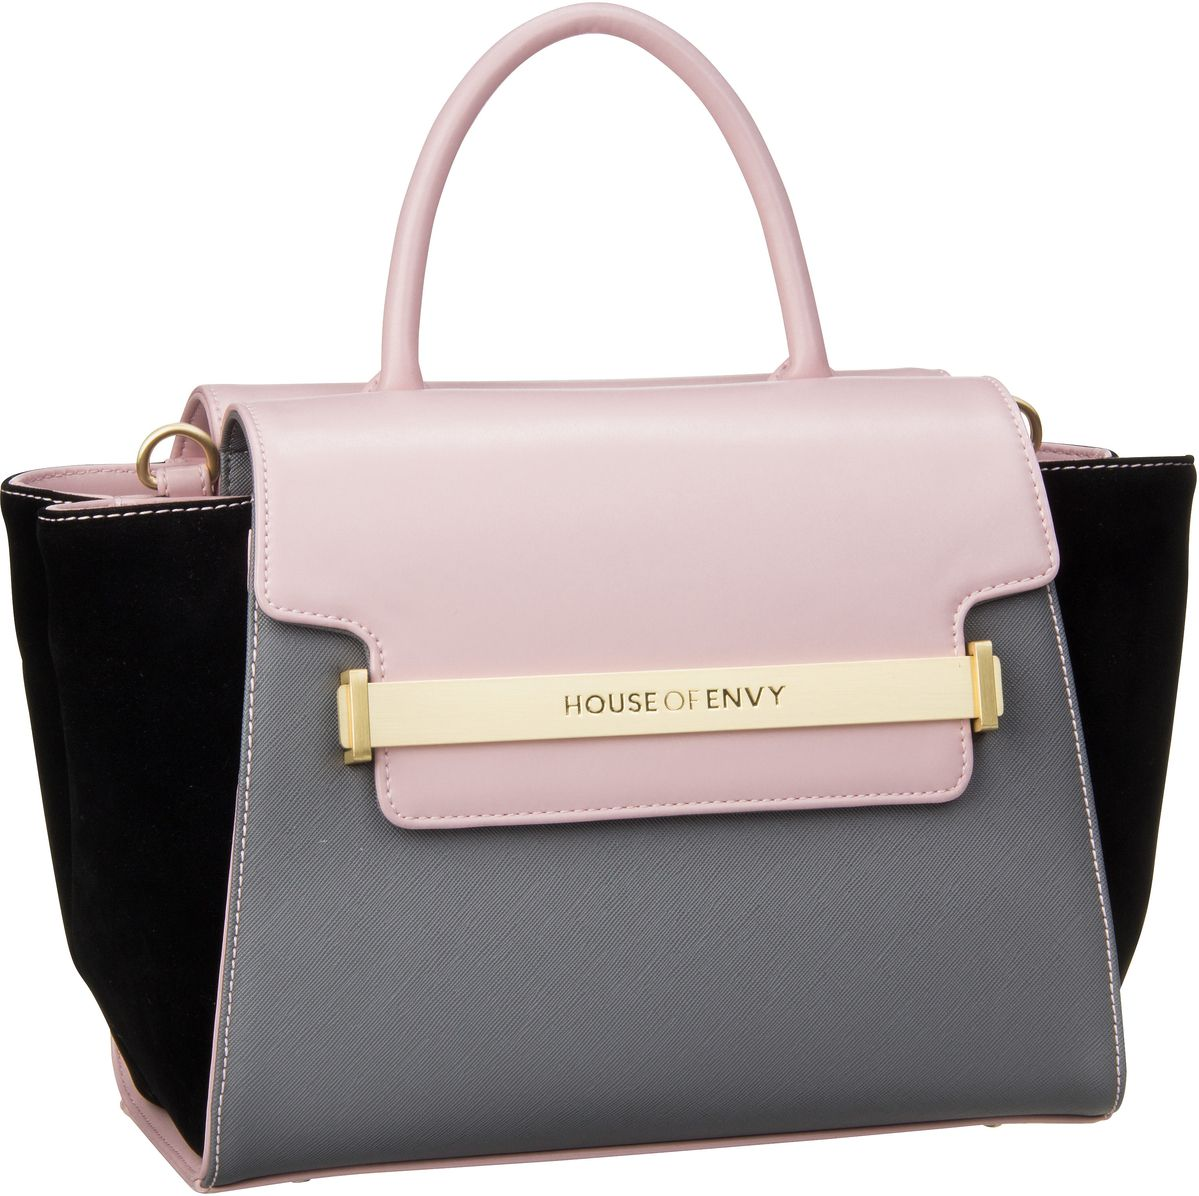 House of Envy Lovable Grey Combi - Handtasche